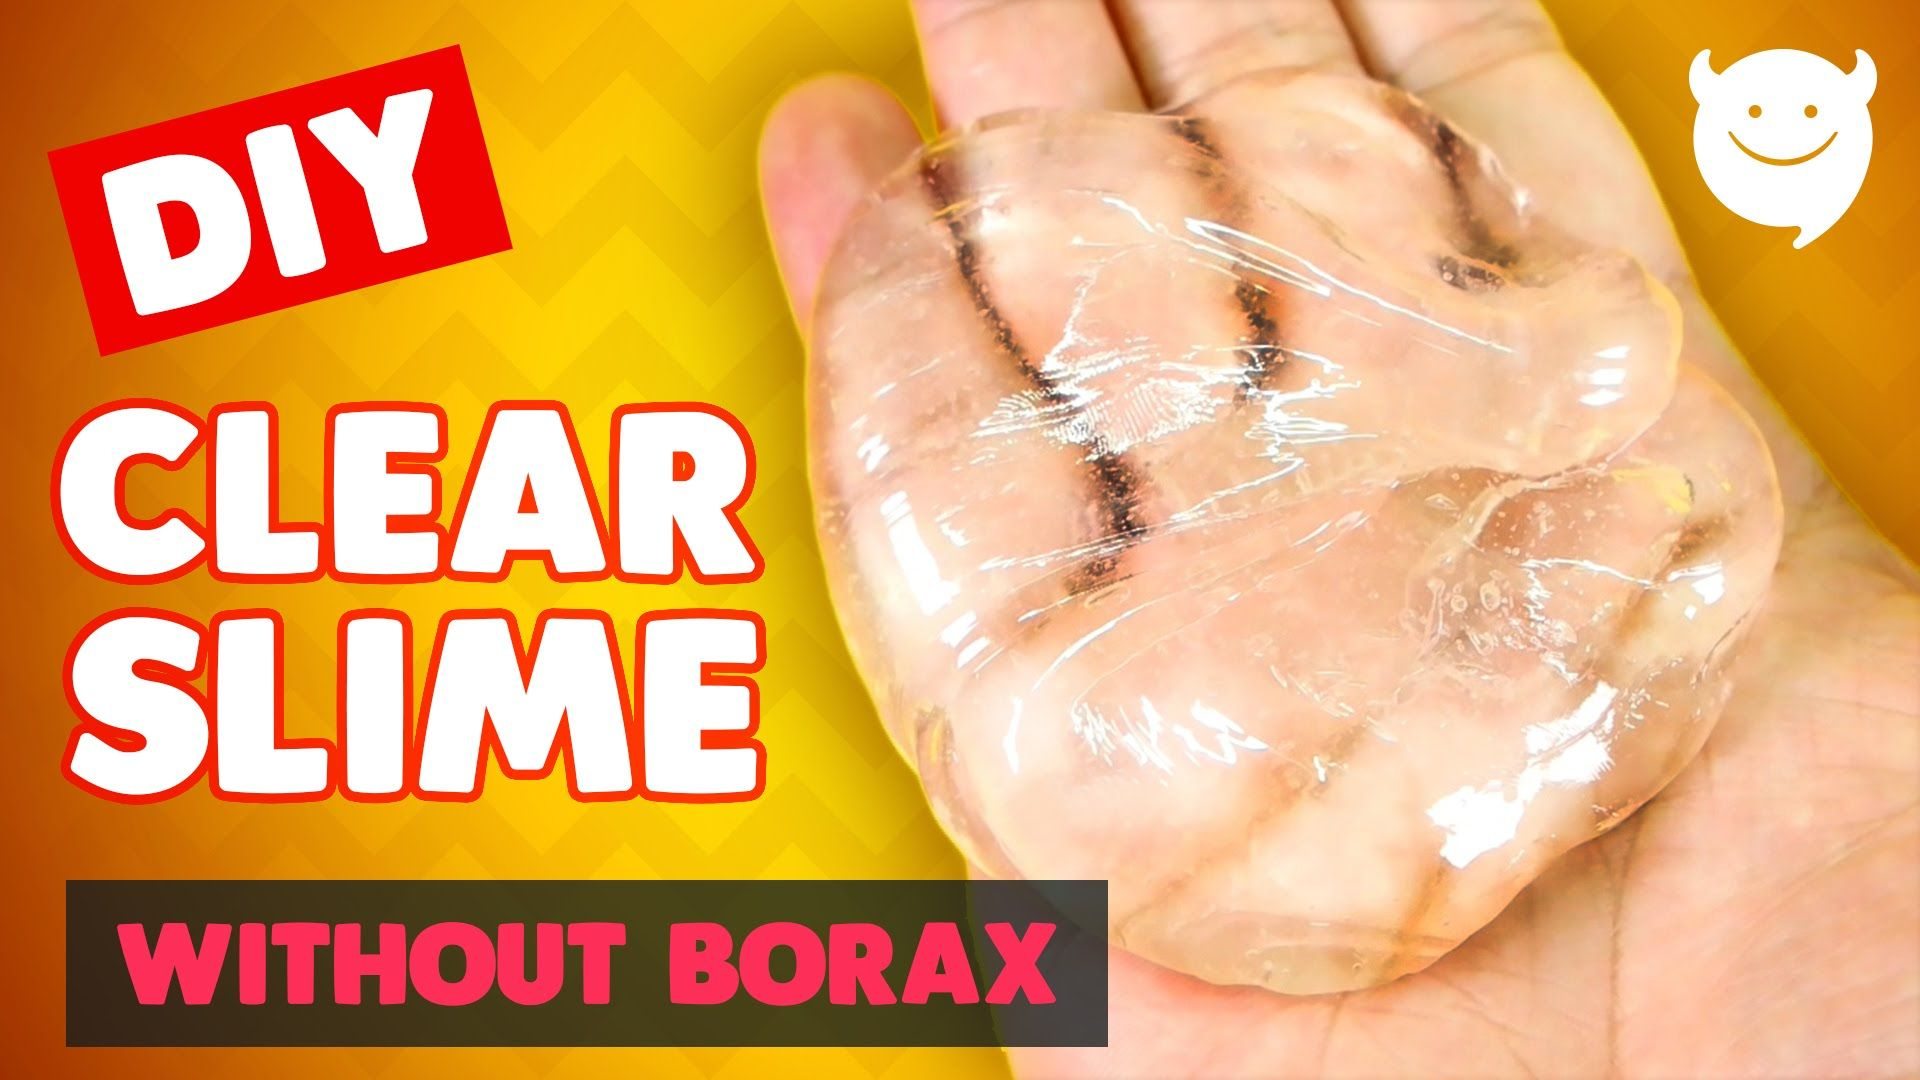 How To Make Jelly Clear Slime  Without Borax (diy Liquid Glass) Clay Slime